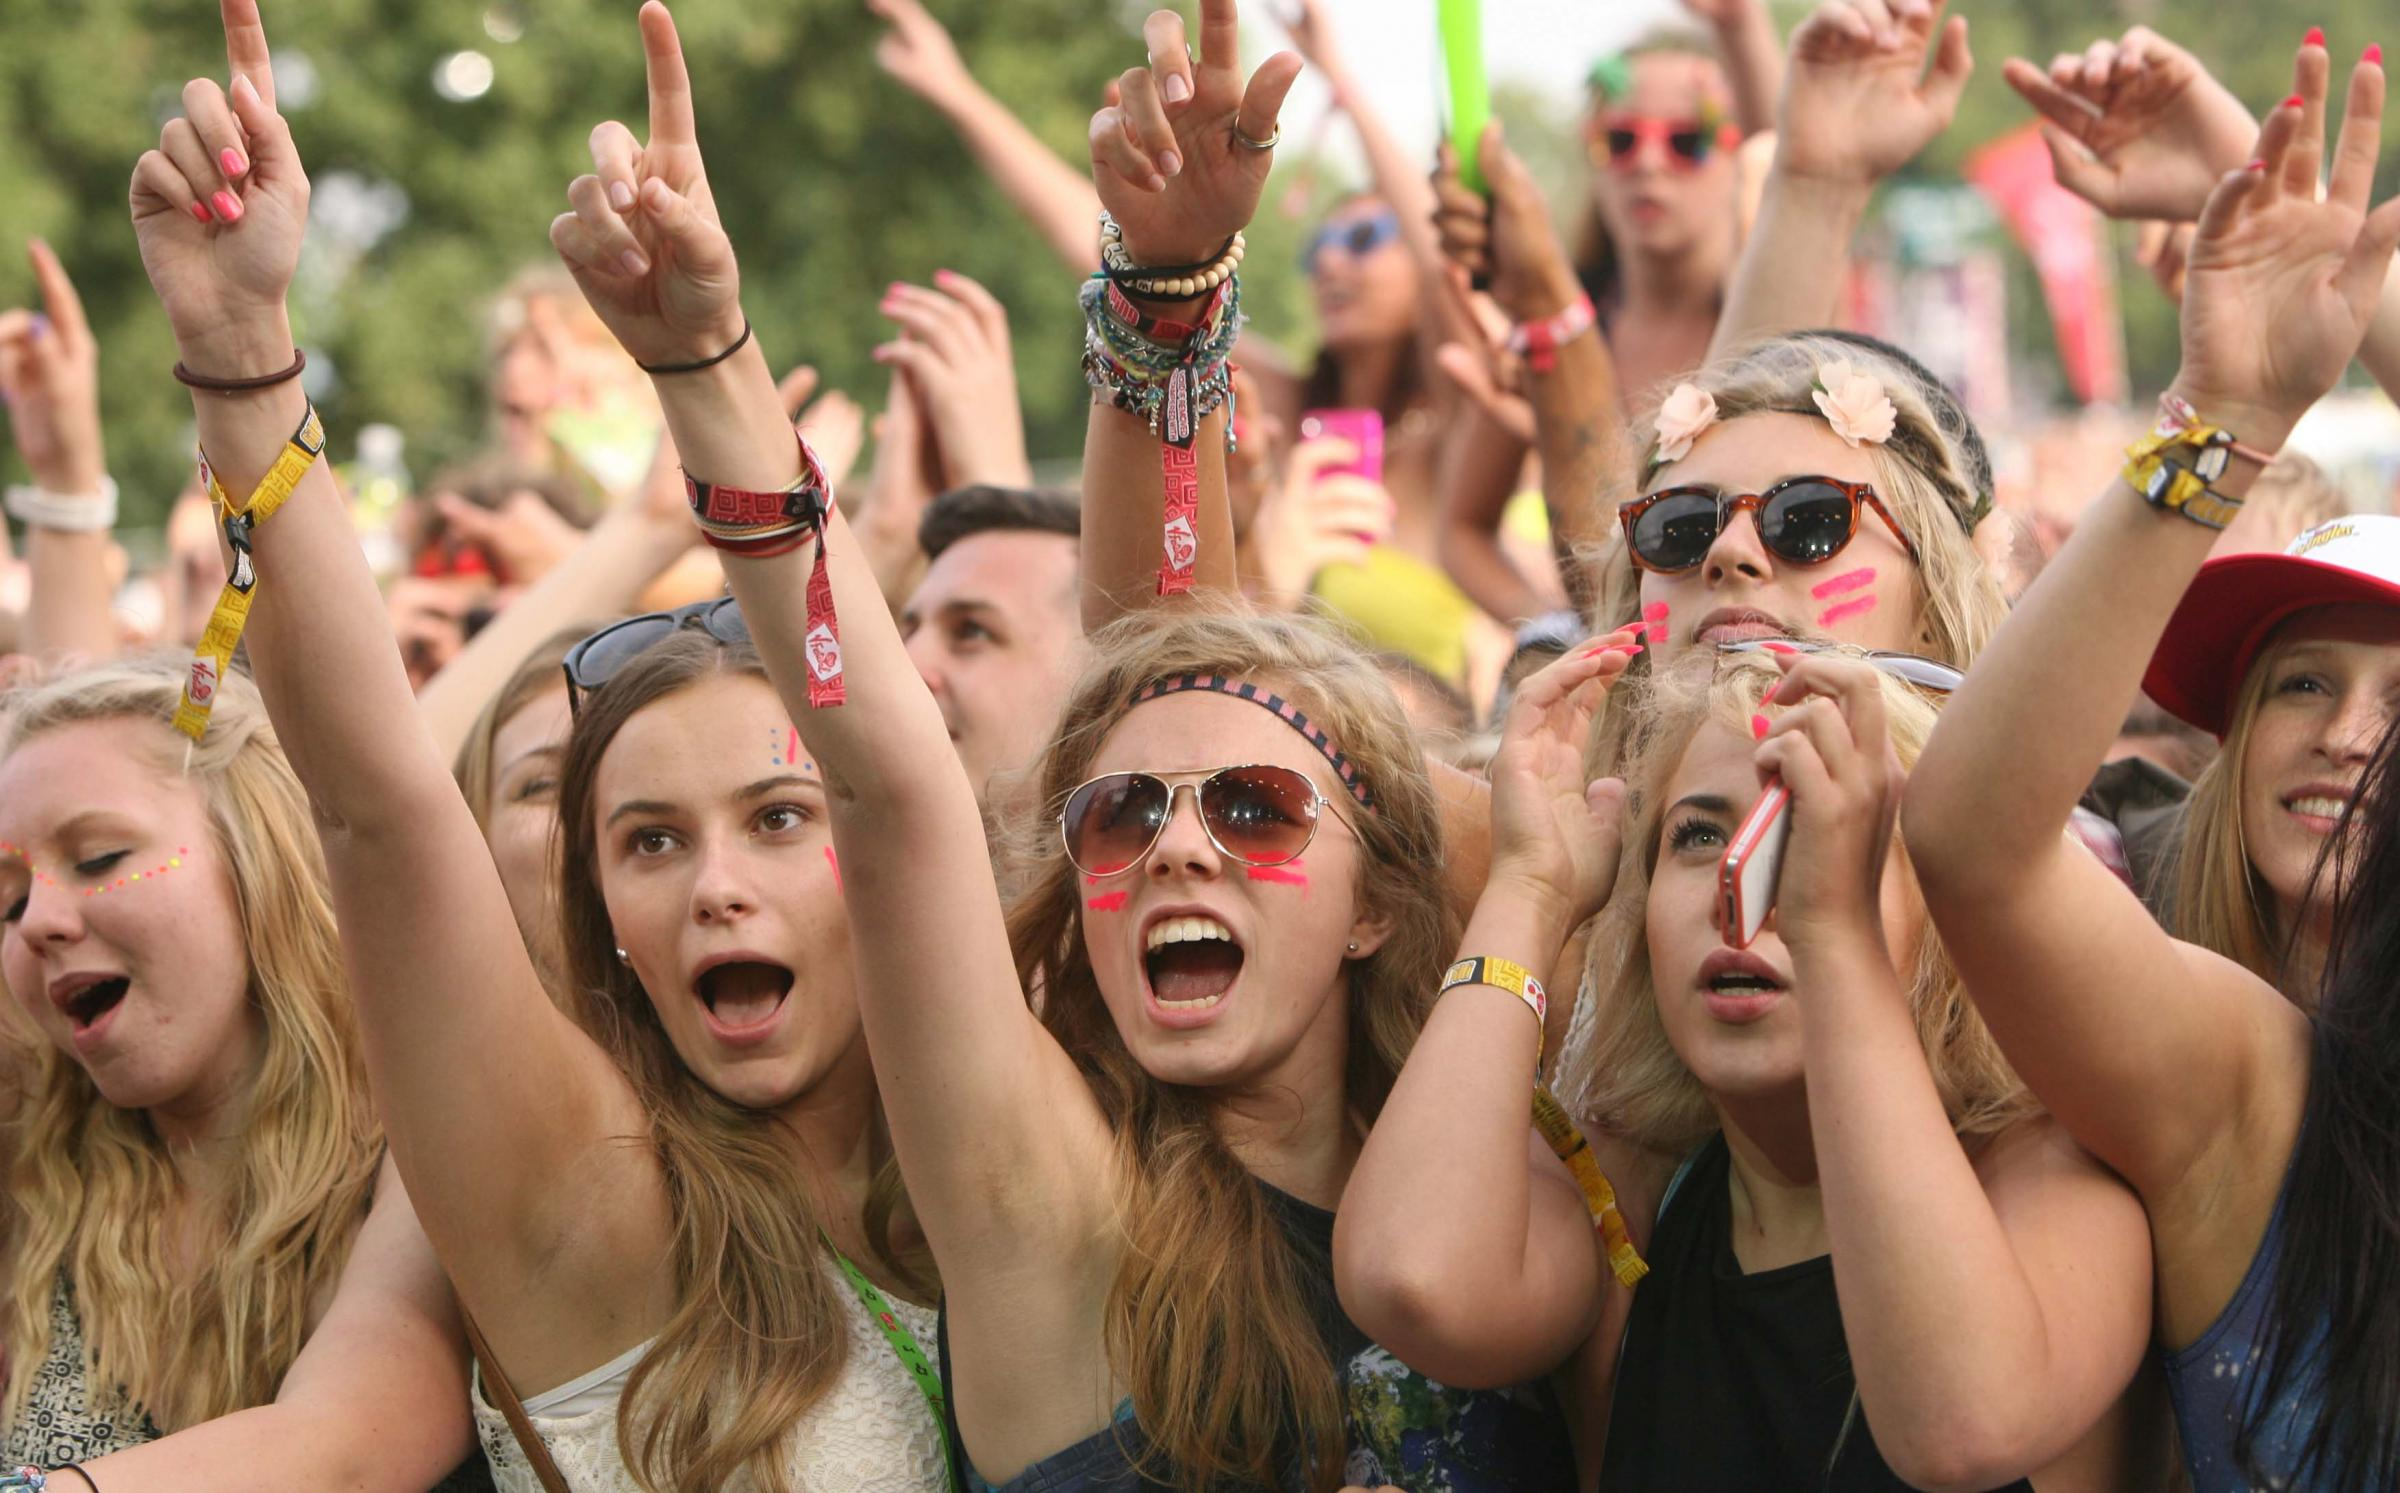 V Festival: Essex residents have first chance to buy tickets